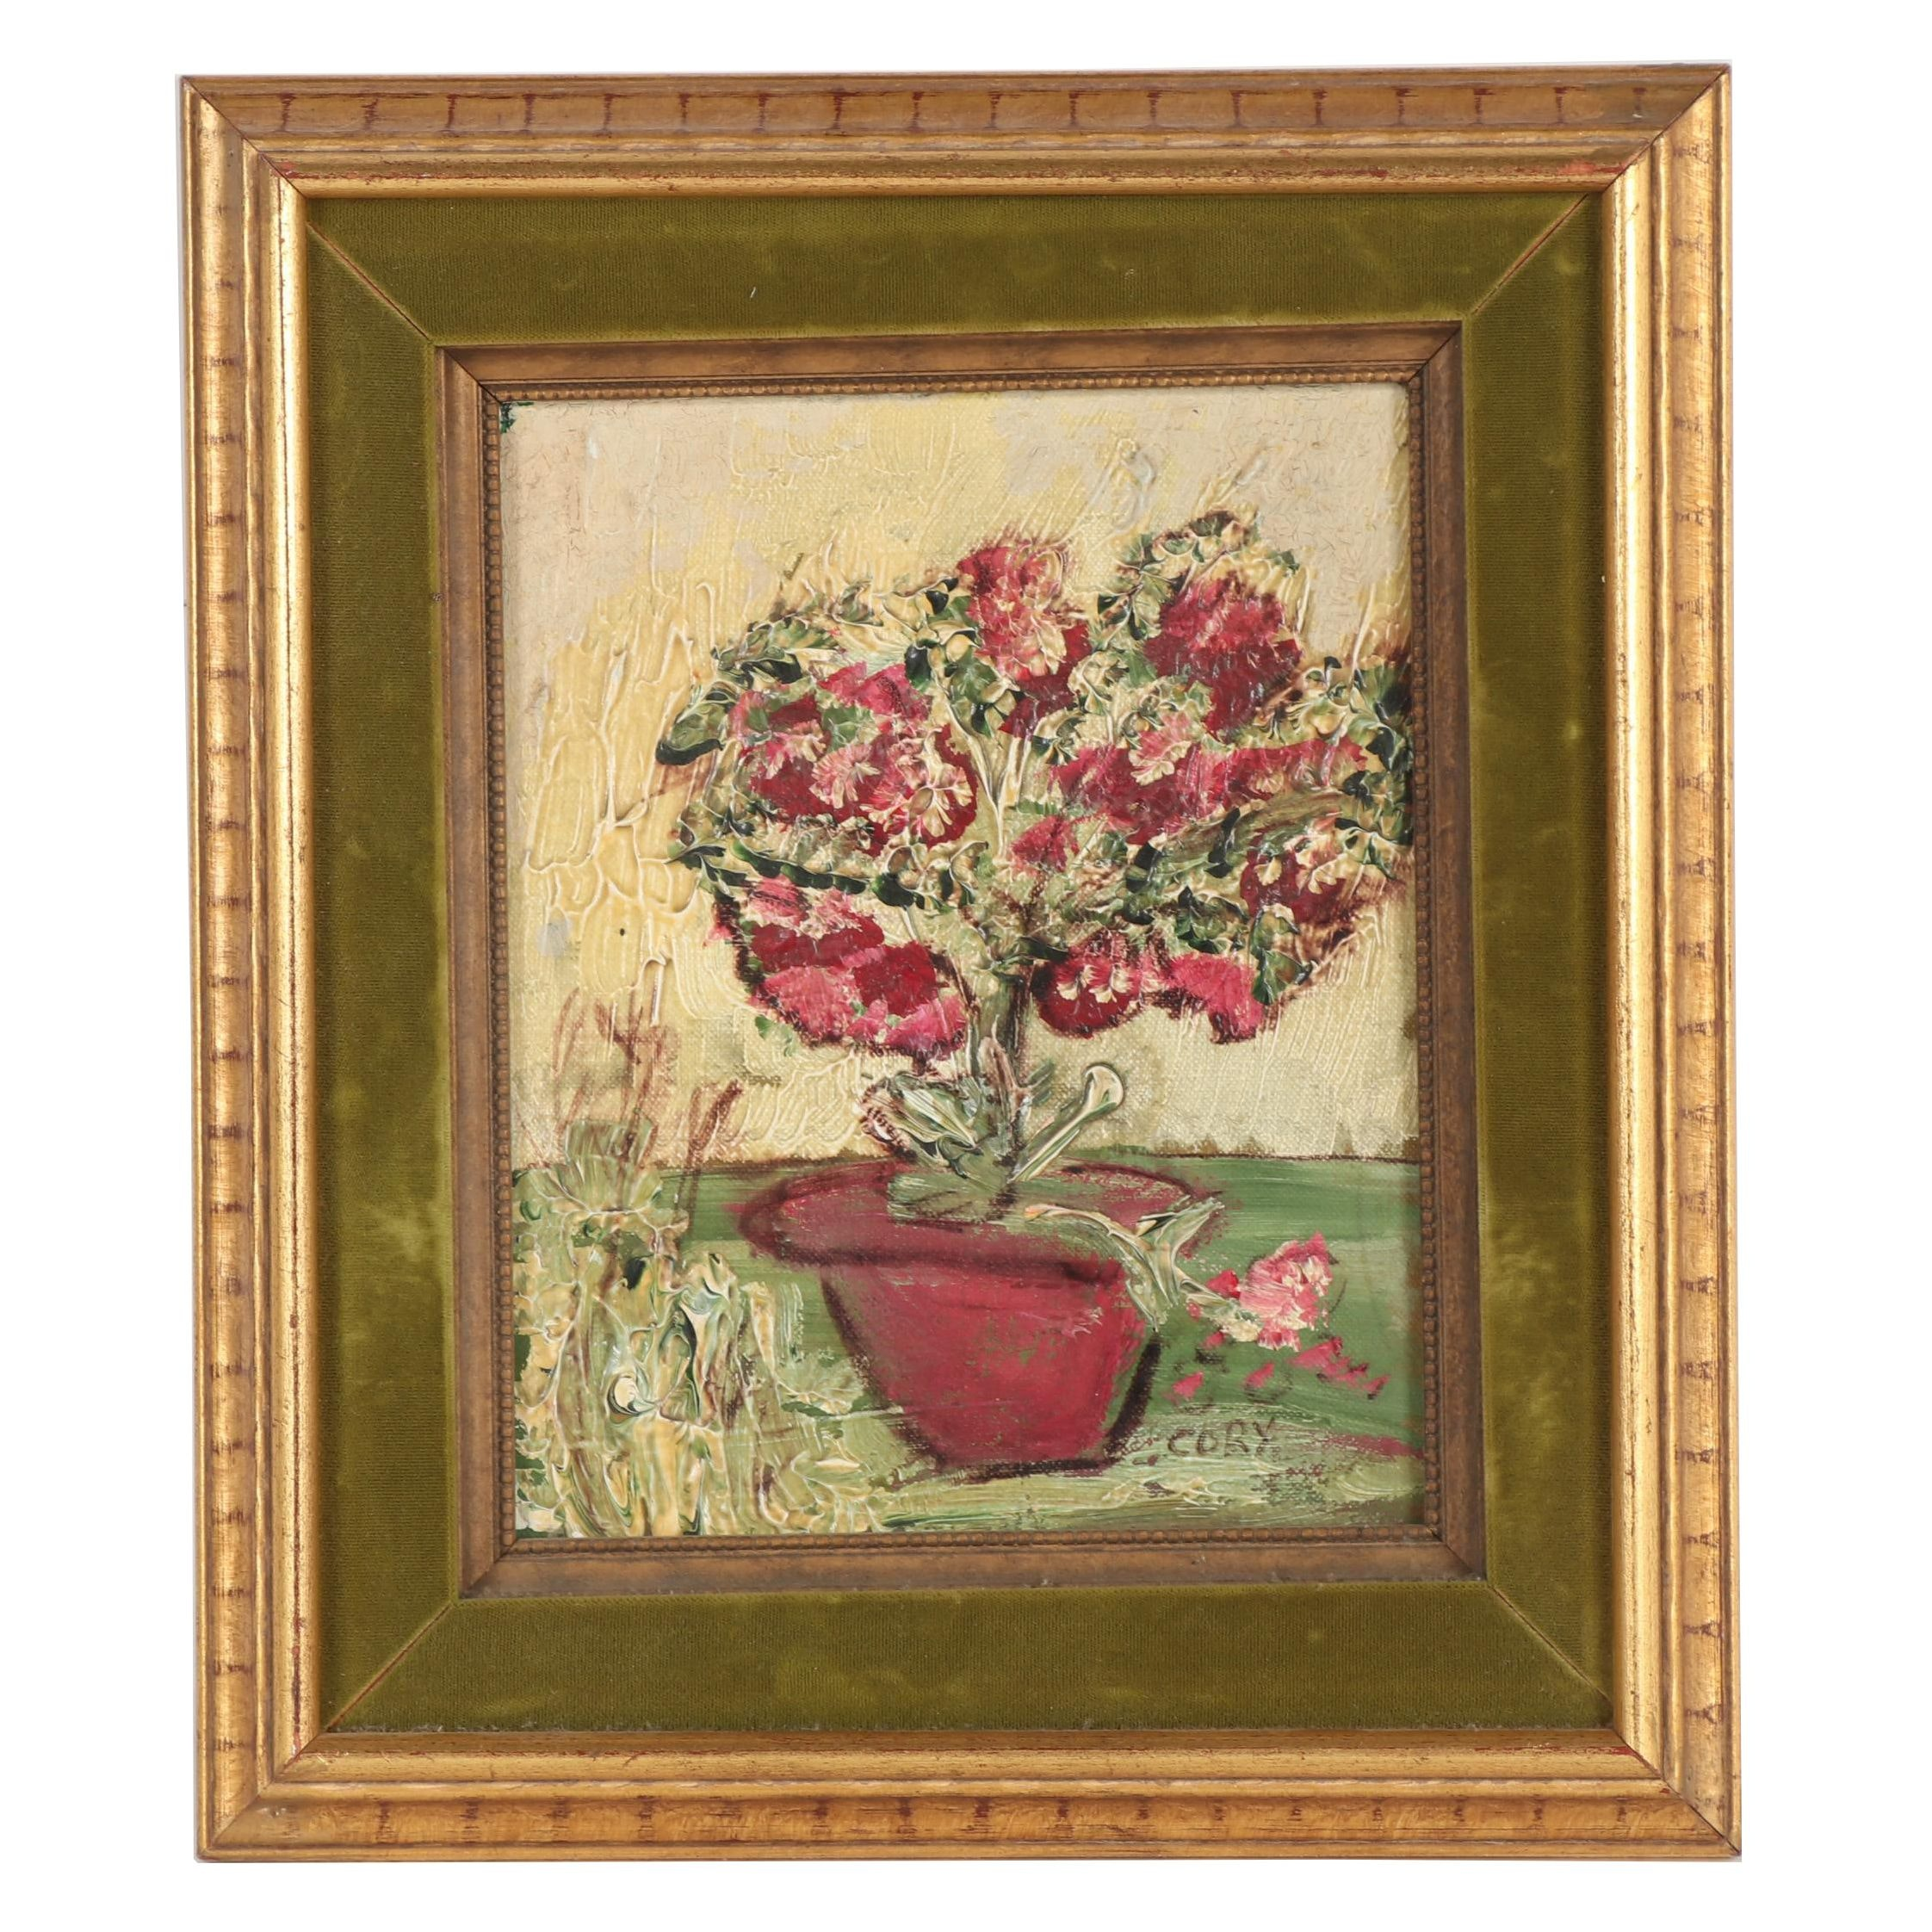 Ed Cory Oil Painting of Floral Still Life